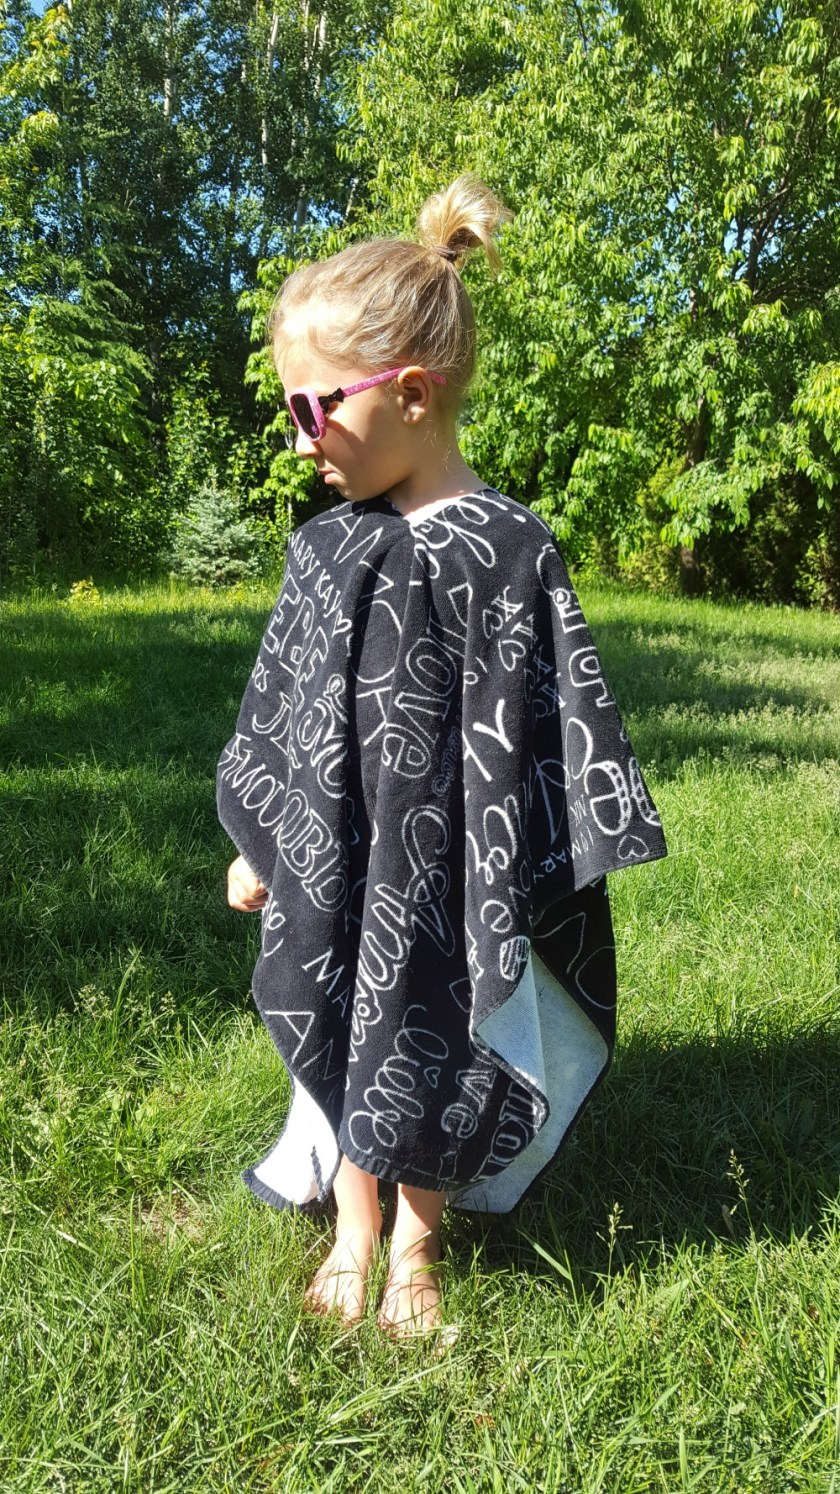 Serviette Poncho DIY wooloo